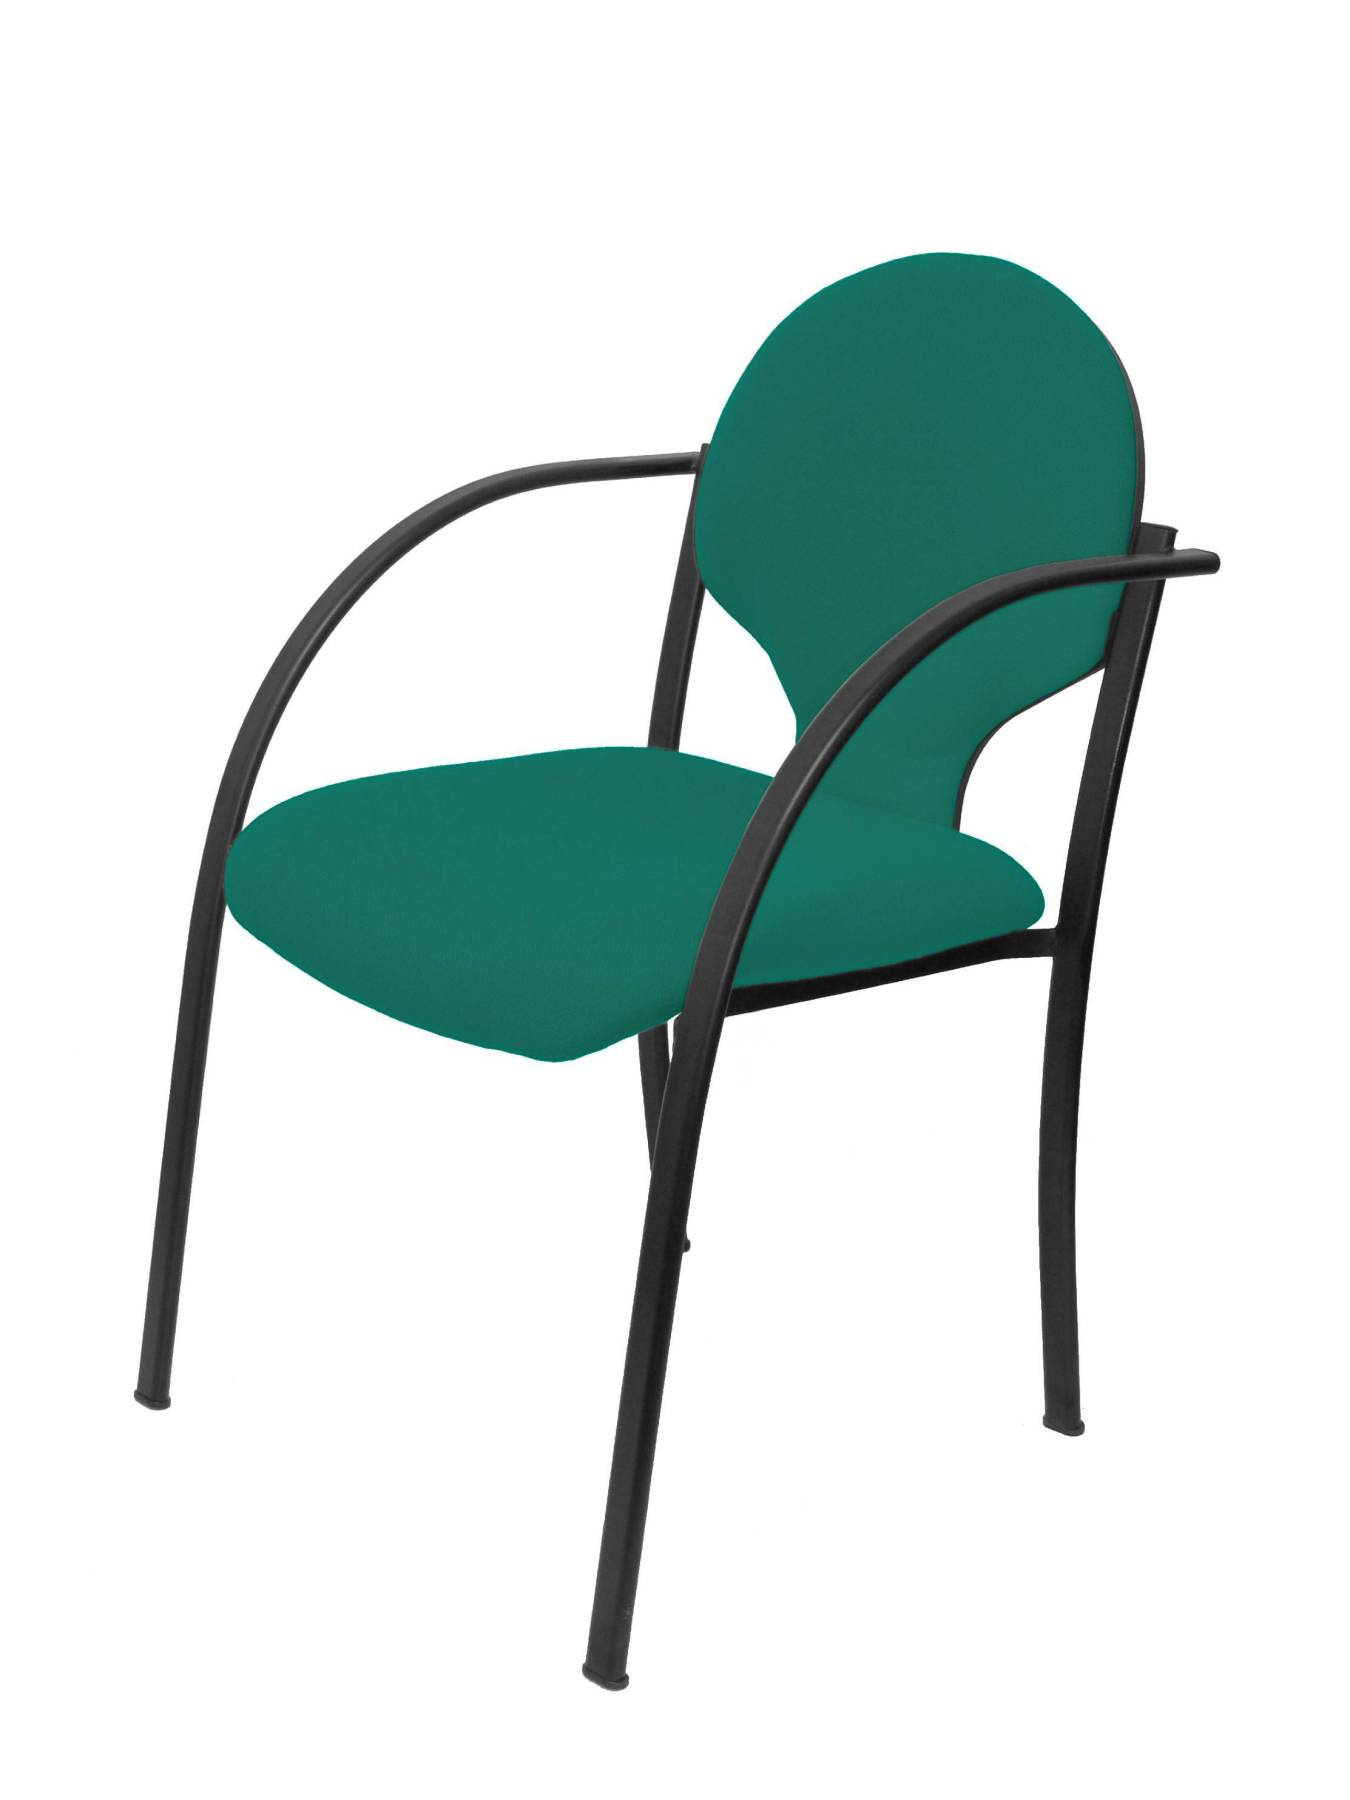 Visitor Chair Desk Ergonomic With Arms Fixed Incorporated, Stackable And Structure In Black Color Up Seat And Backstop Tap